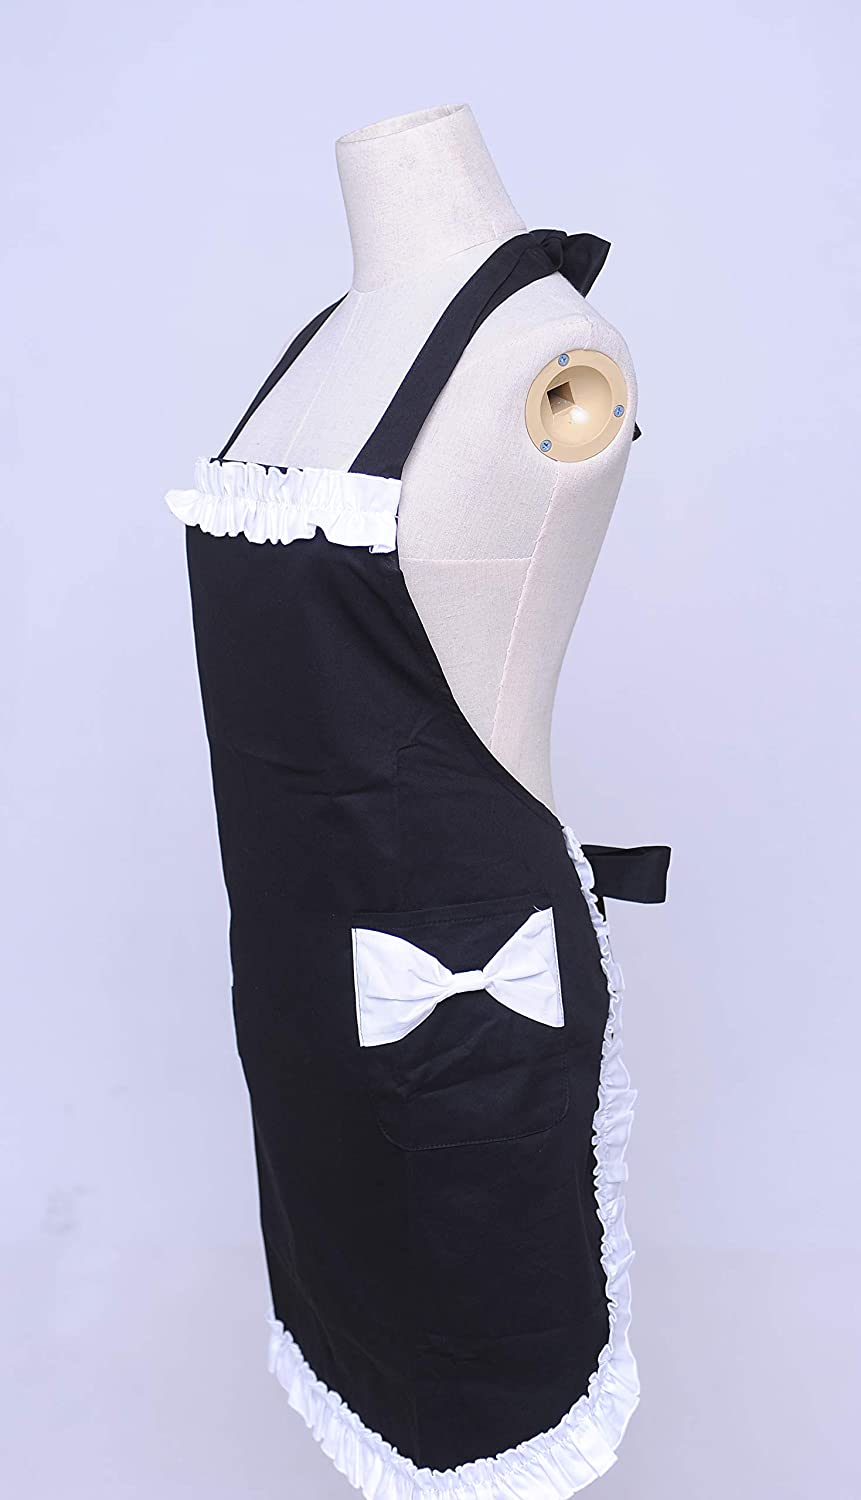 with Fills and Two Pockets Cooking Apron,High-end Lovely Fashion Lady Apron Restaurant Baking Cafe ,easy to wash Kitchen Home Chef Black Gardening etc 3 Colors 100/% Cotton,for Women